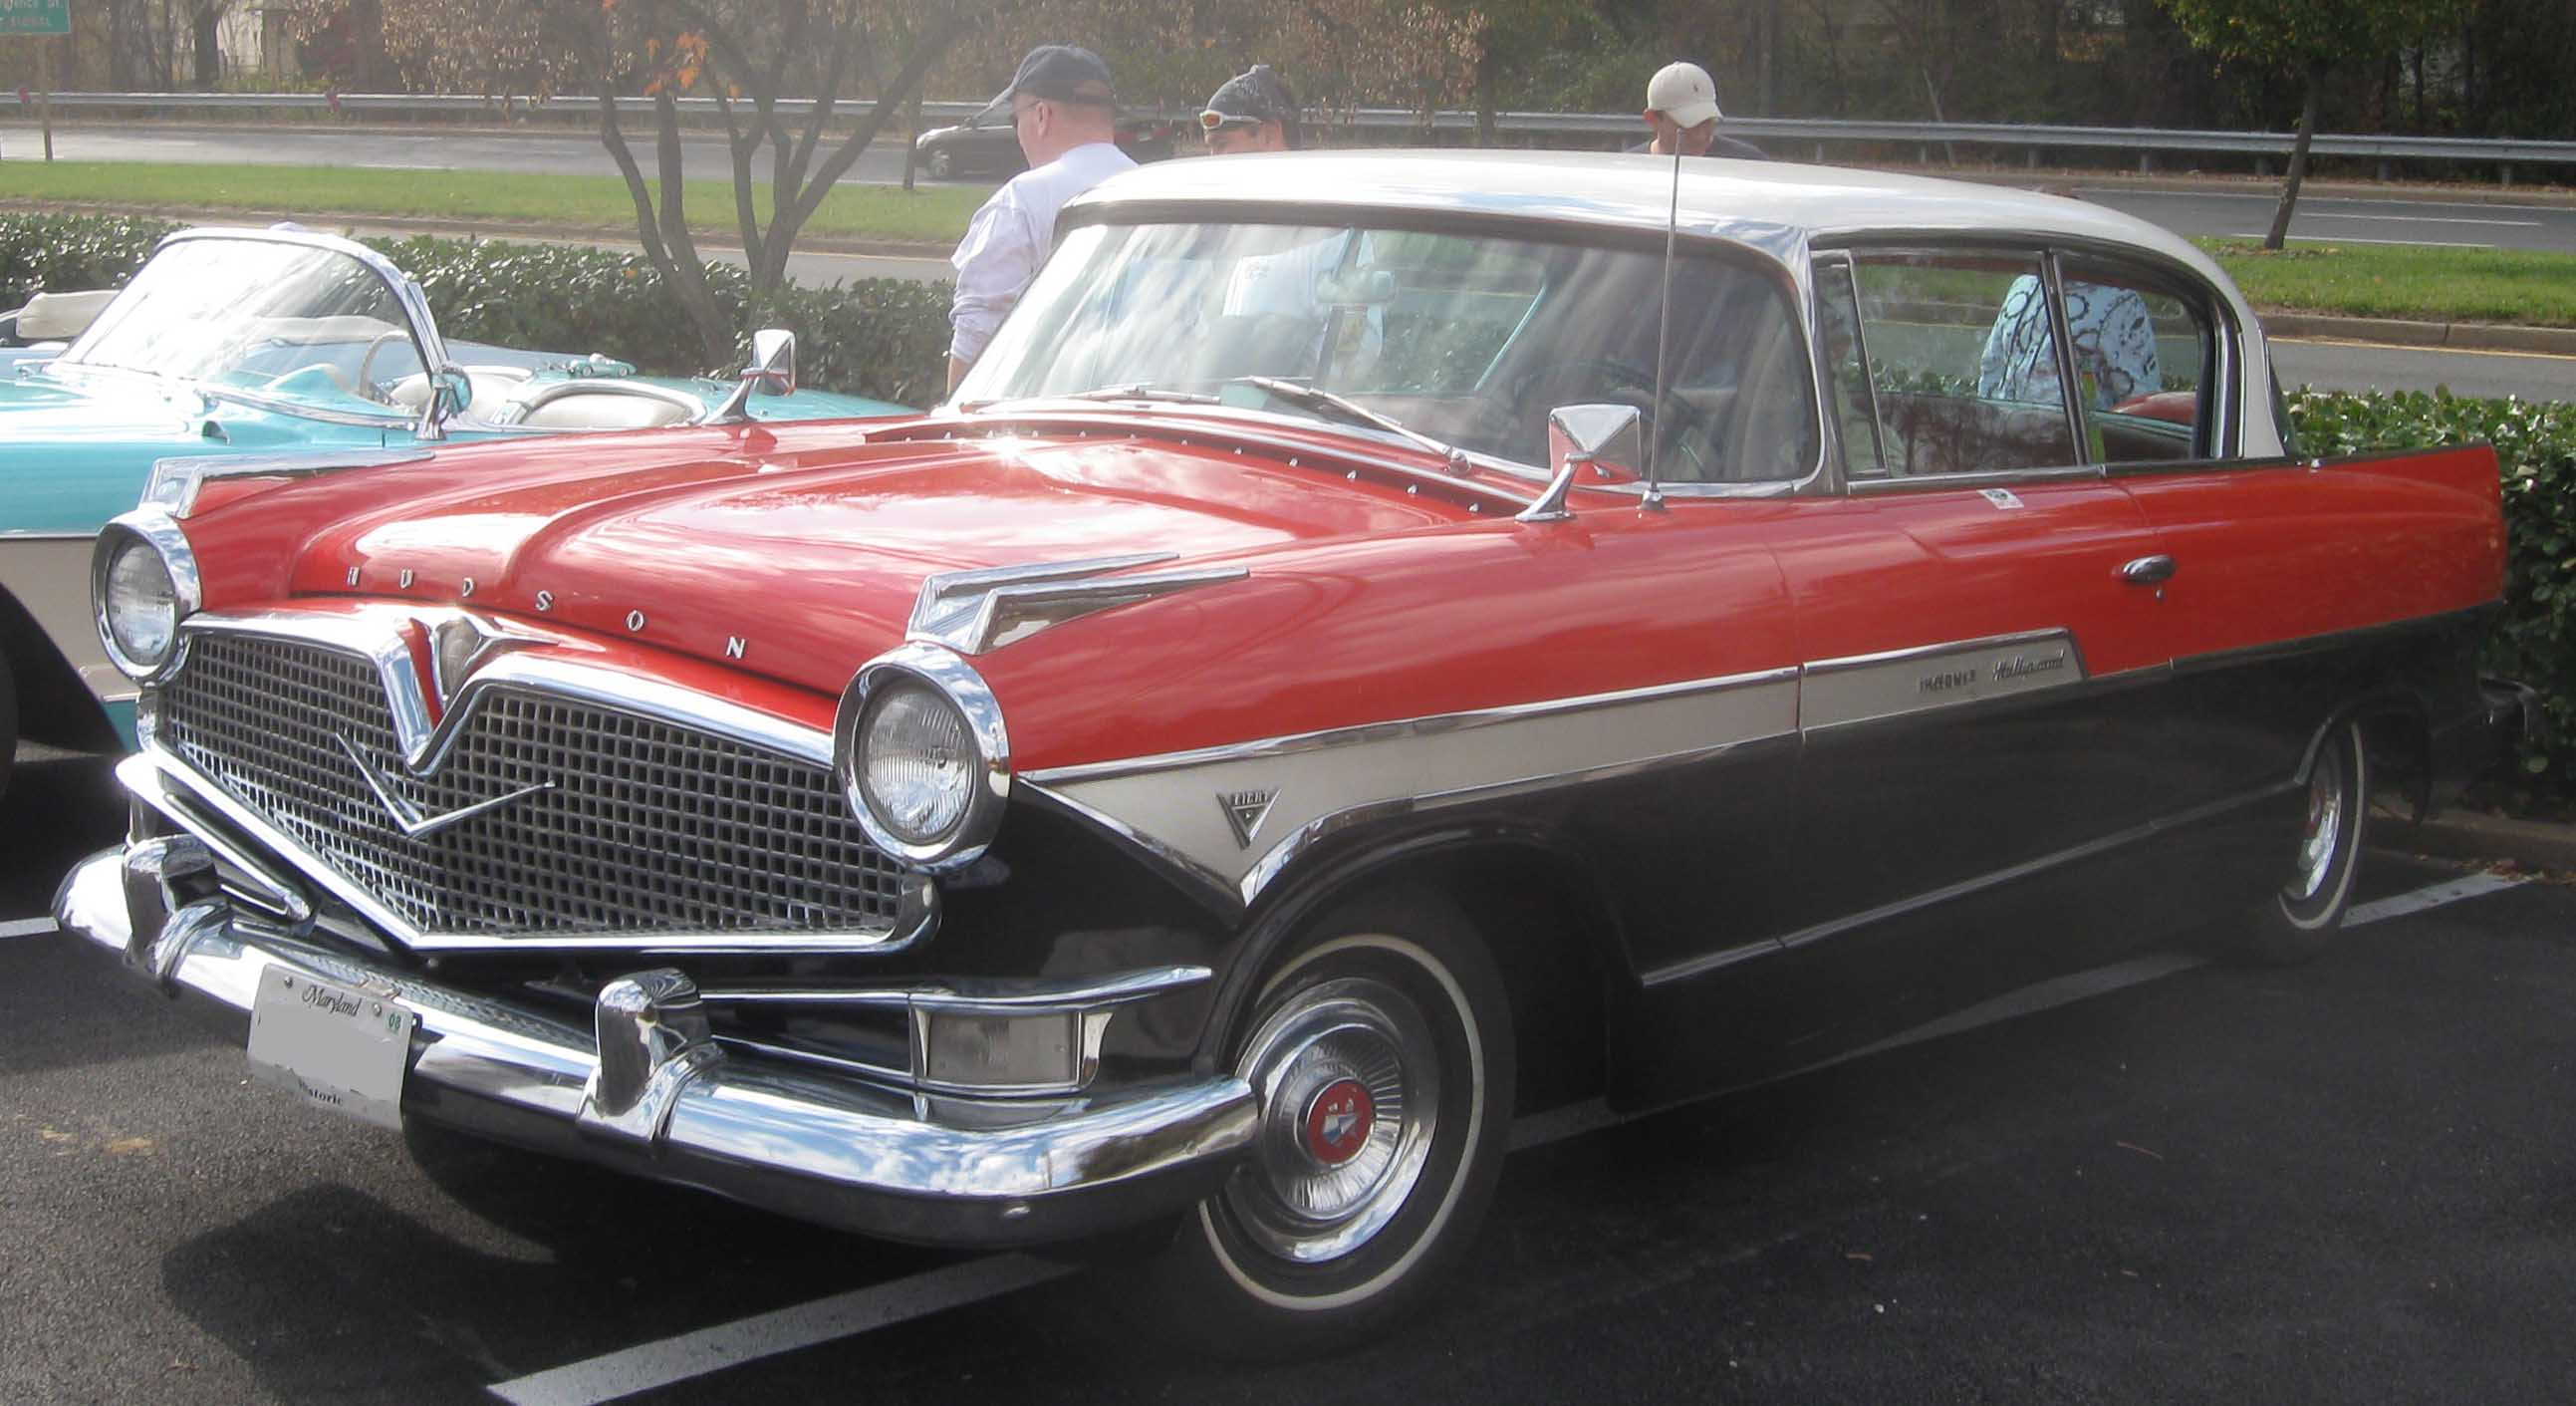 File:1957 Hudson Hornet Hollywood 2 Door